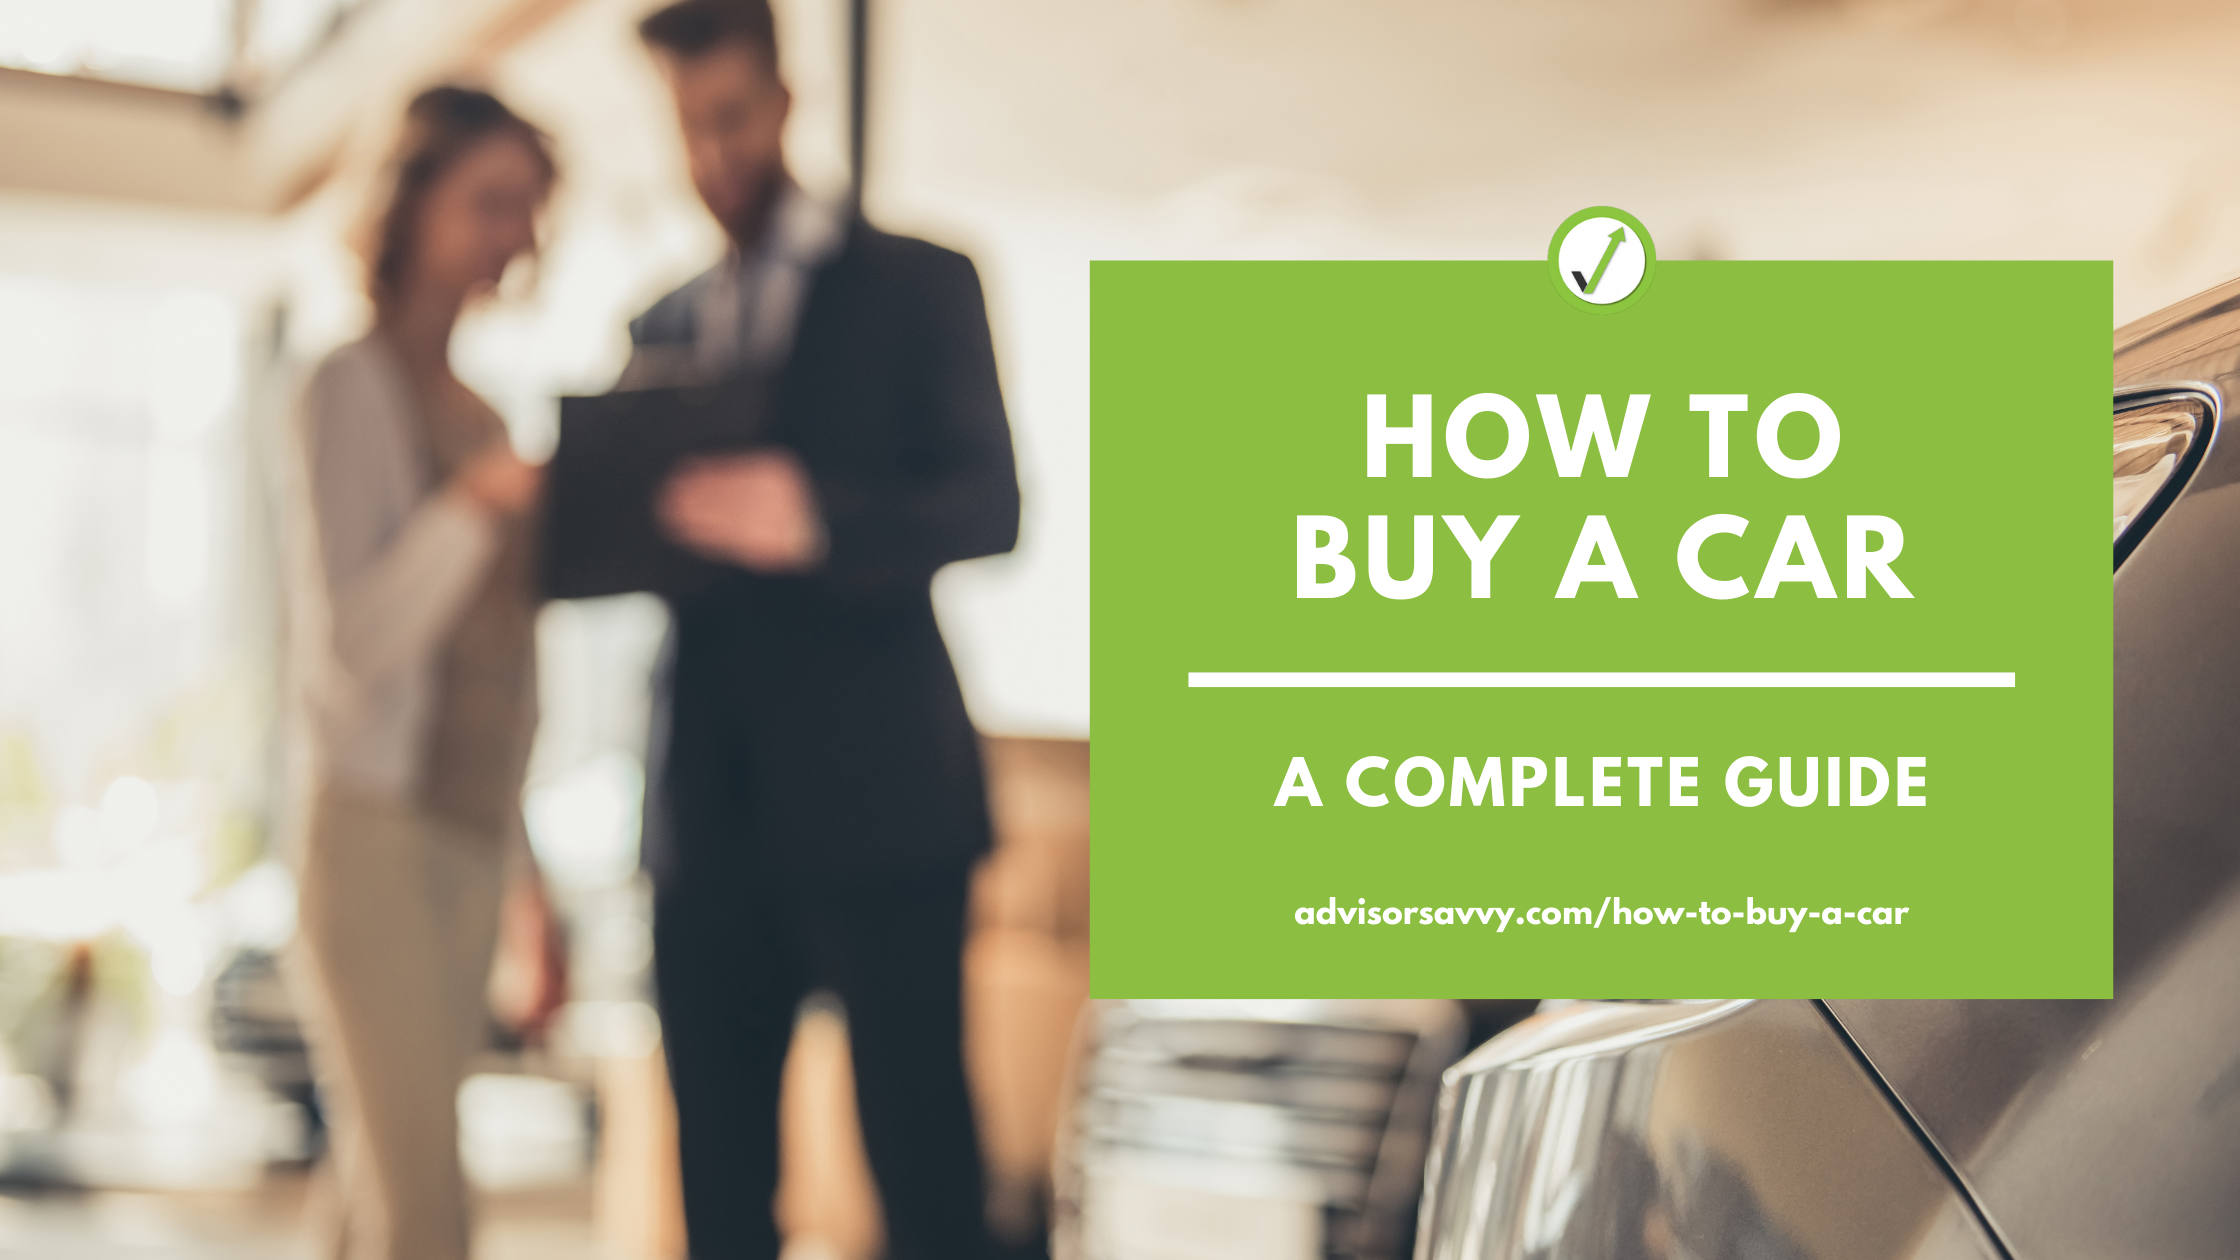 How to buy a car: a complete guide